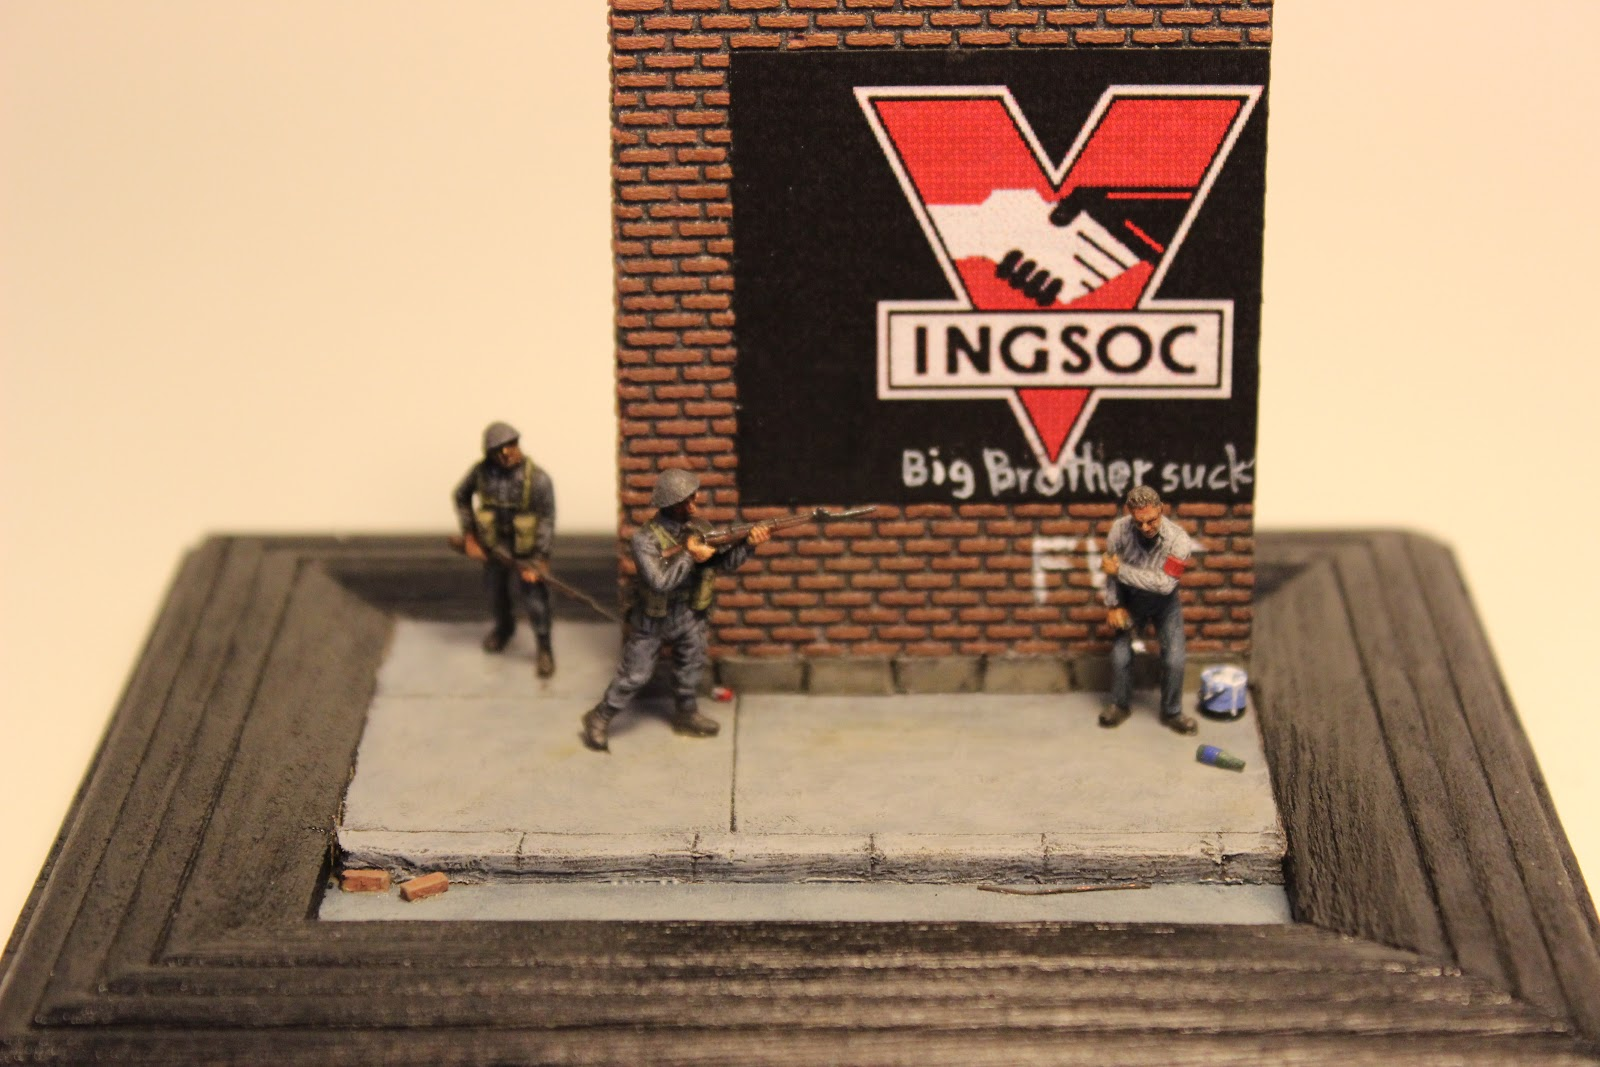 militaryminis my latest diorama a homage to orwell s 1984 my latest diorama a homage to orwell s 1984